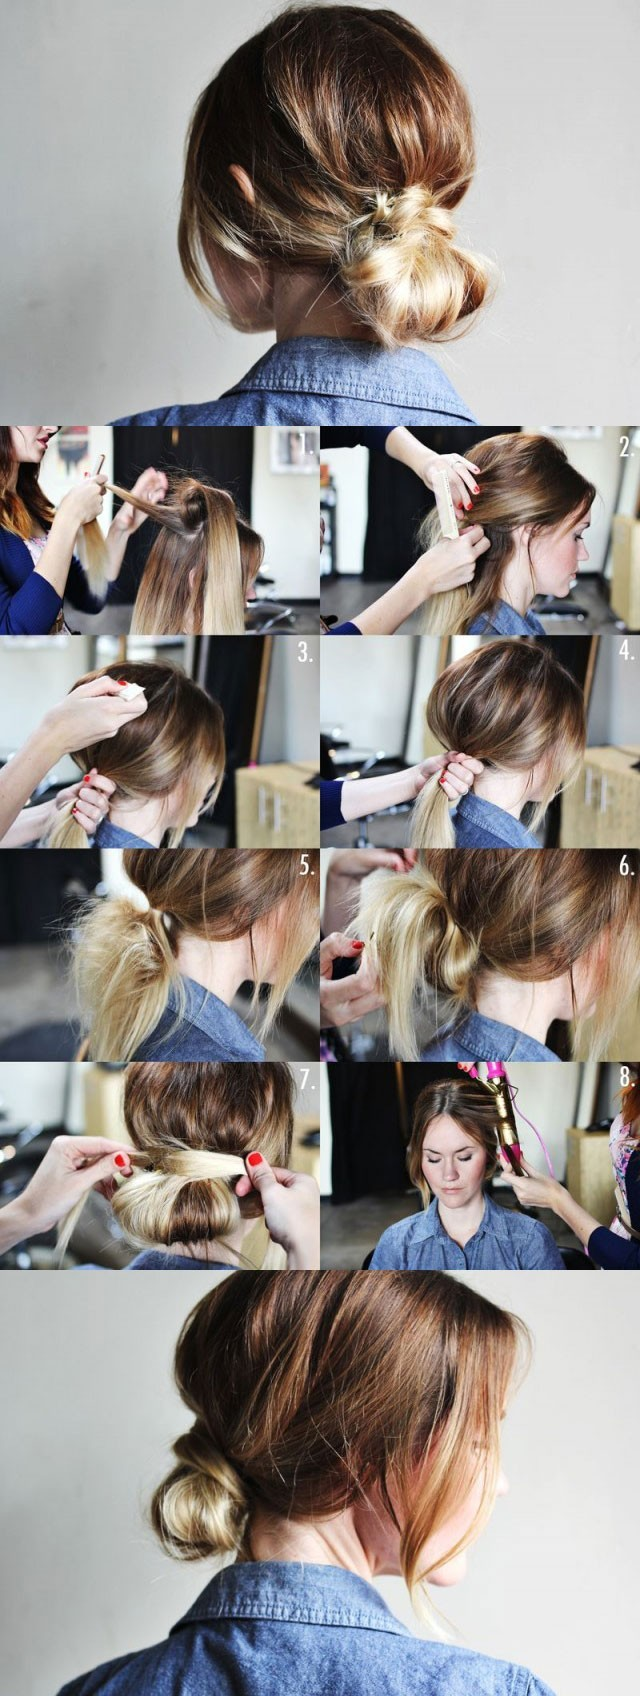 low-bun-updo-hairstyle-tutorial-easy-hairstyles-for-women